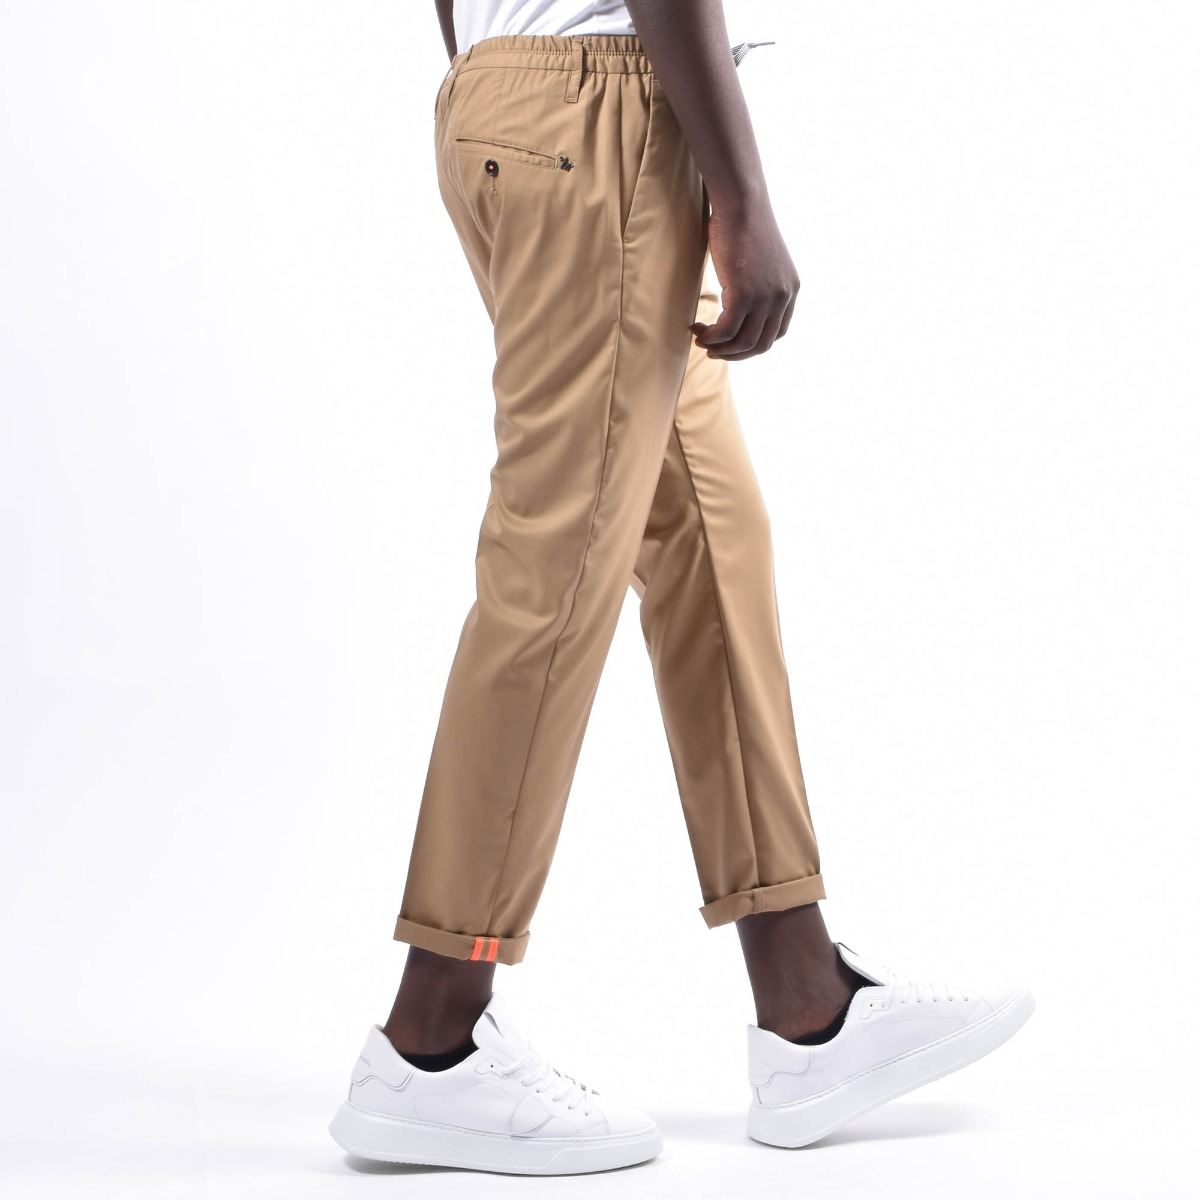 Pantalone con coulisse - Cammello